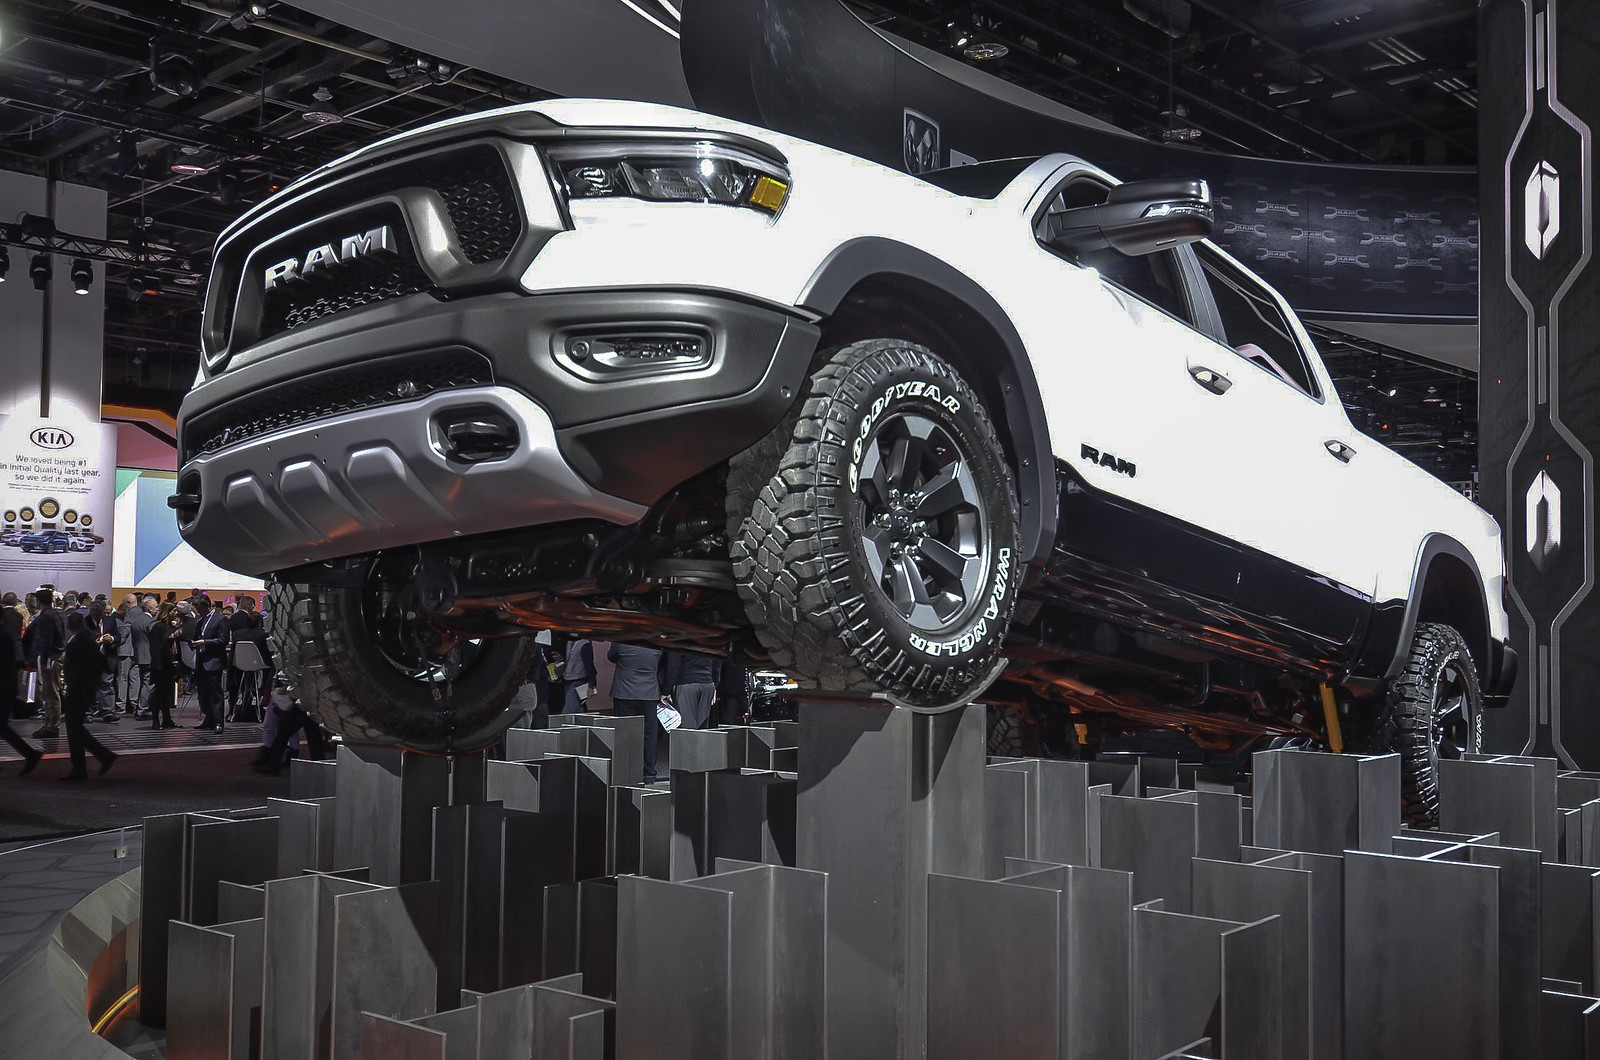 2019 Ram 1500 live photos: 2018 NAIAS